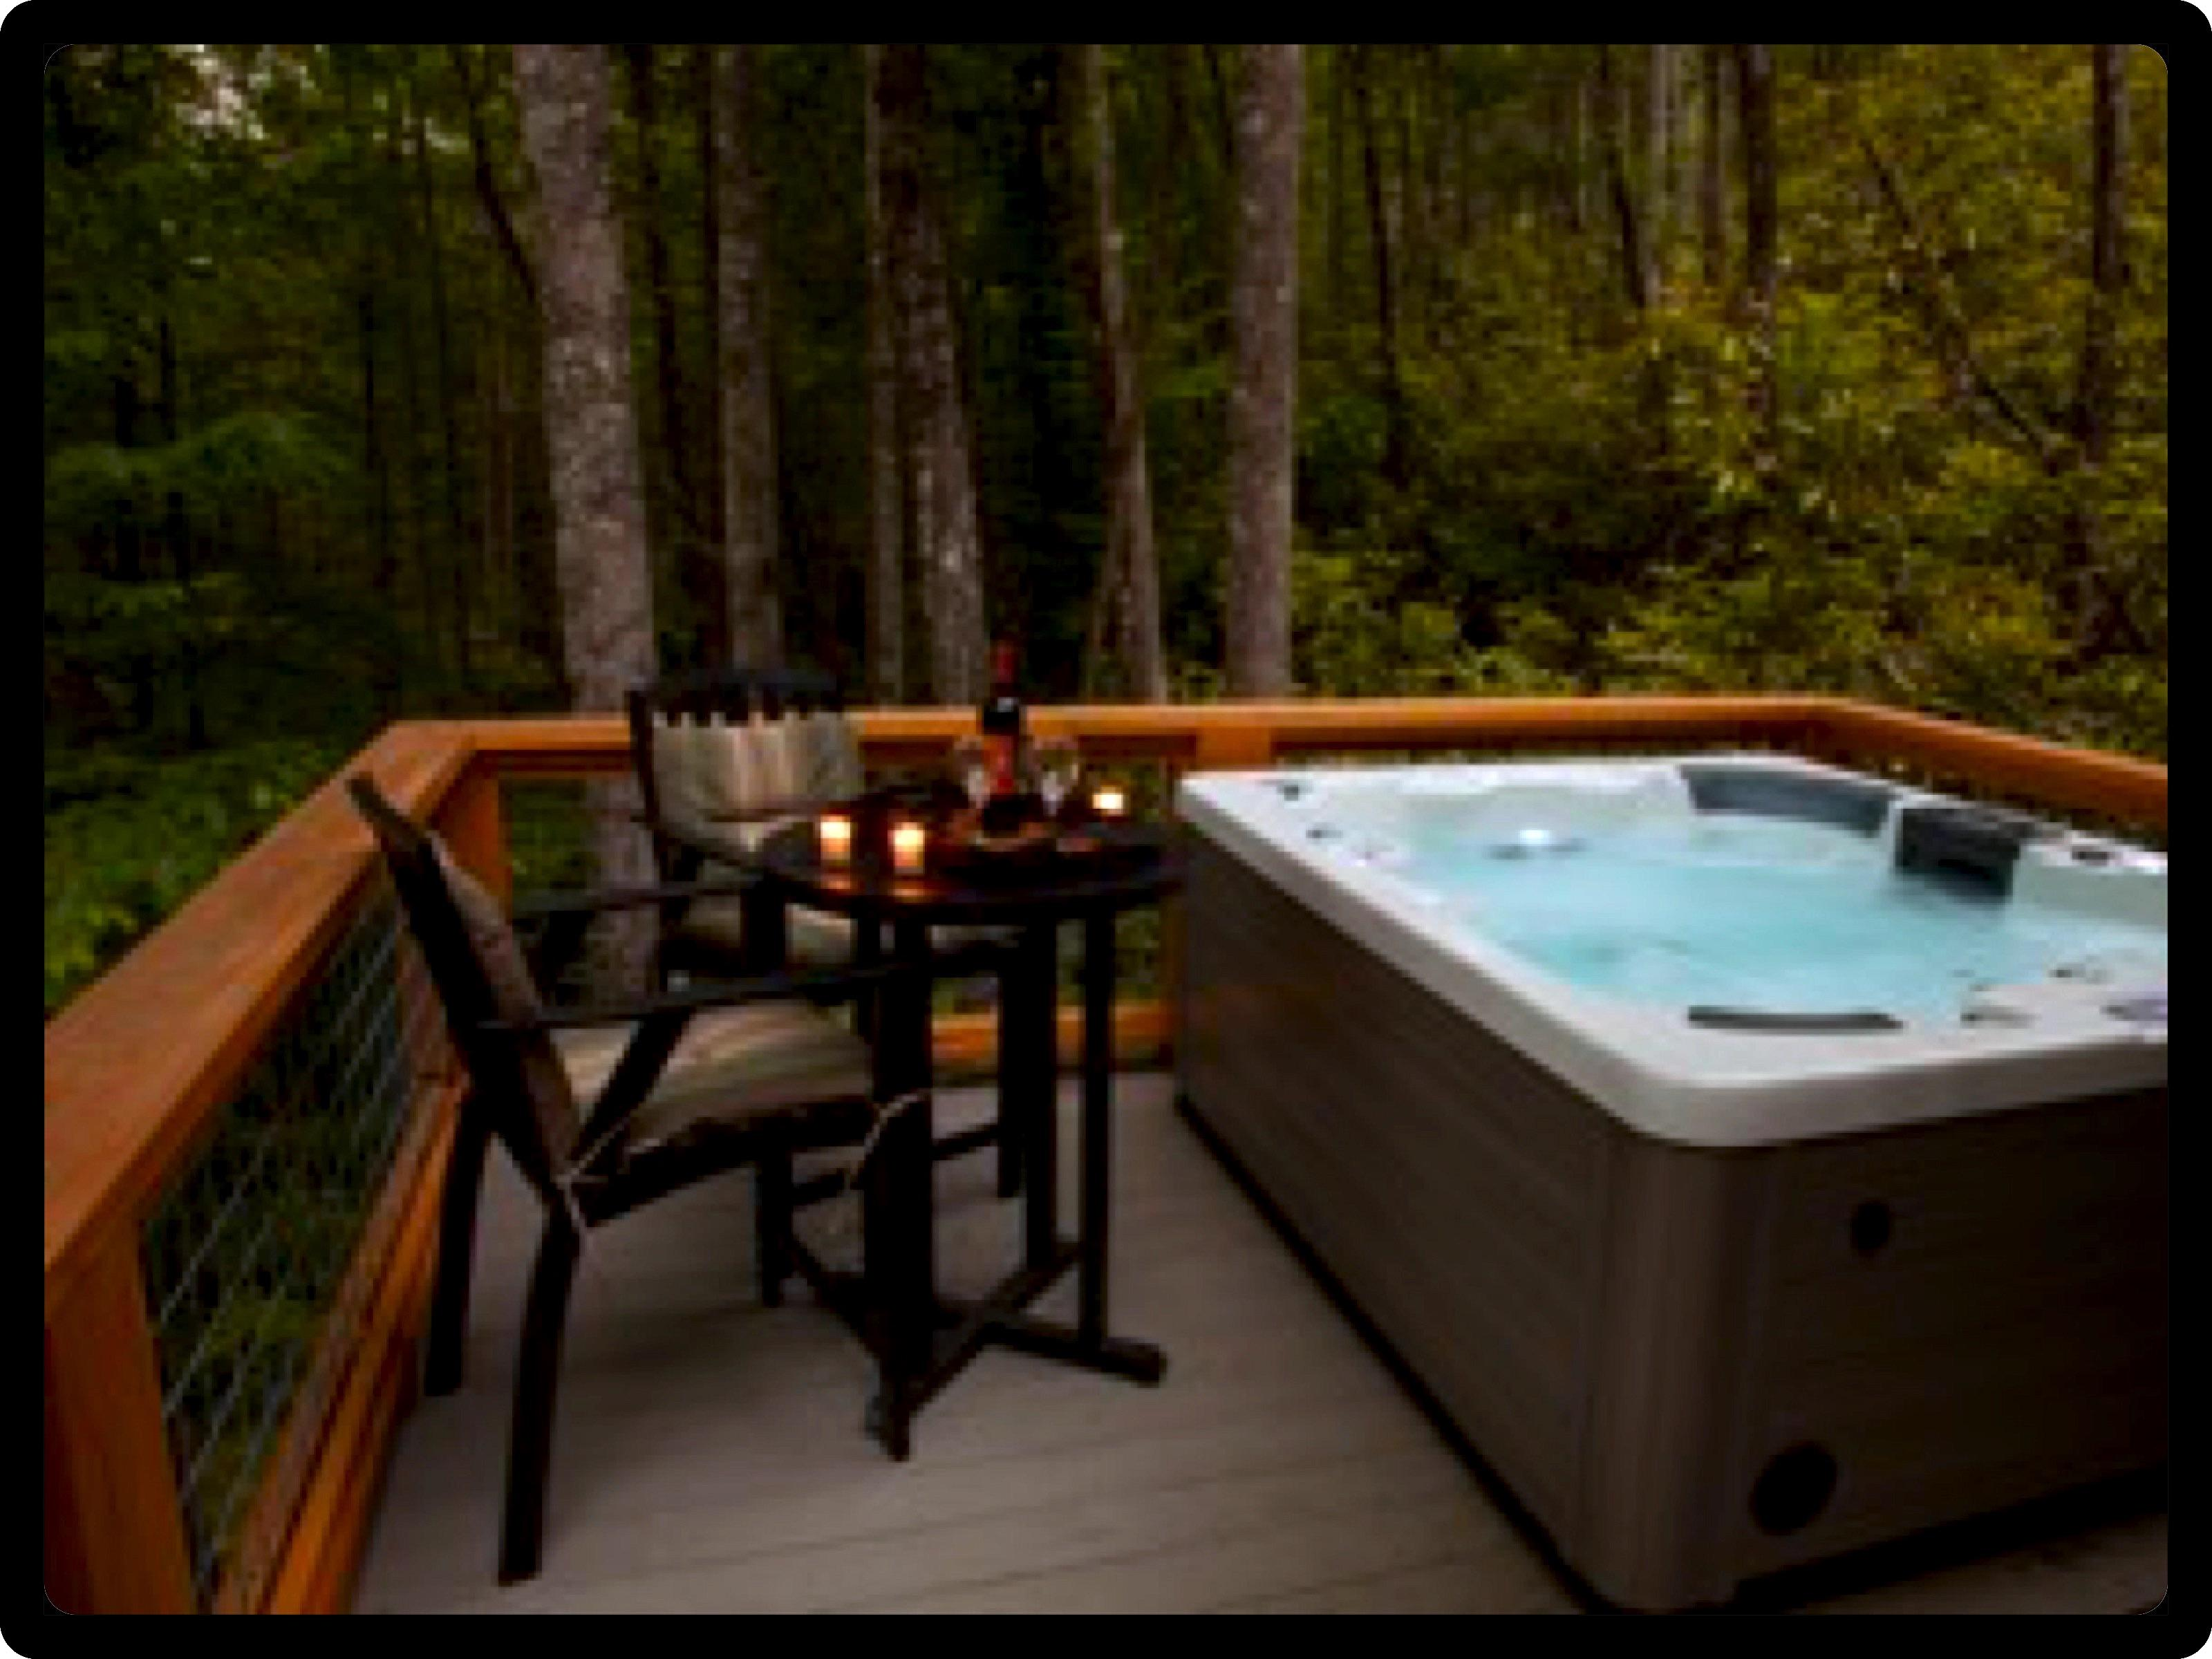 Romantic Setting and Peaceful Serenity